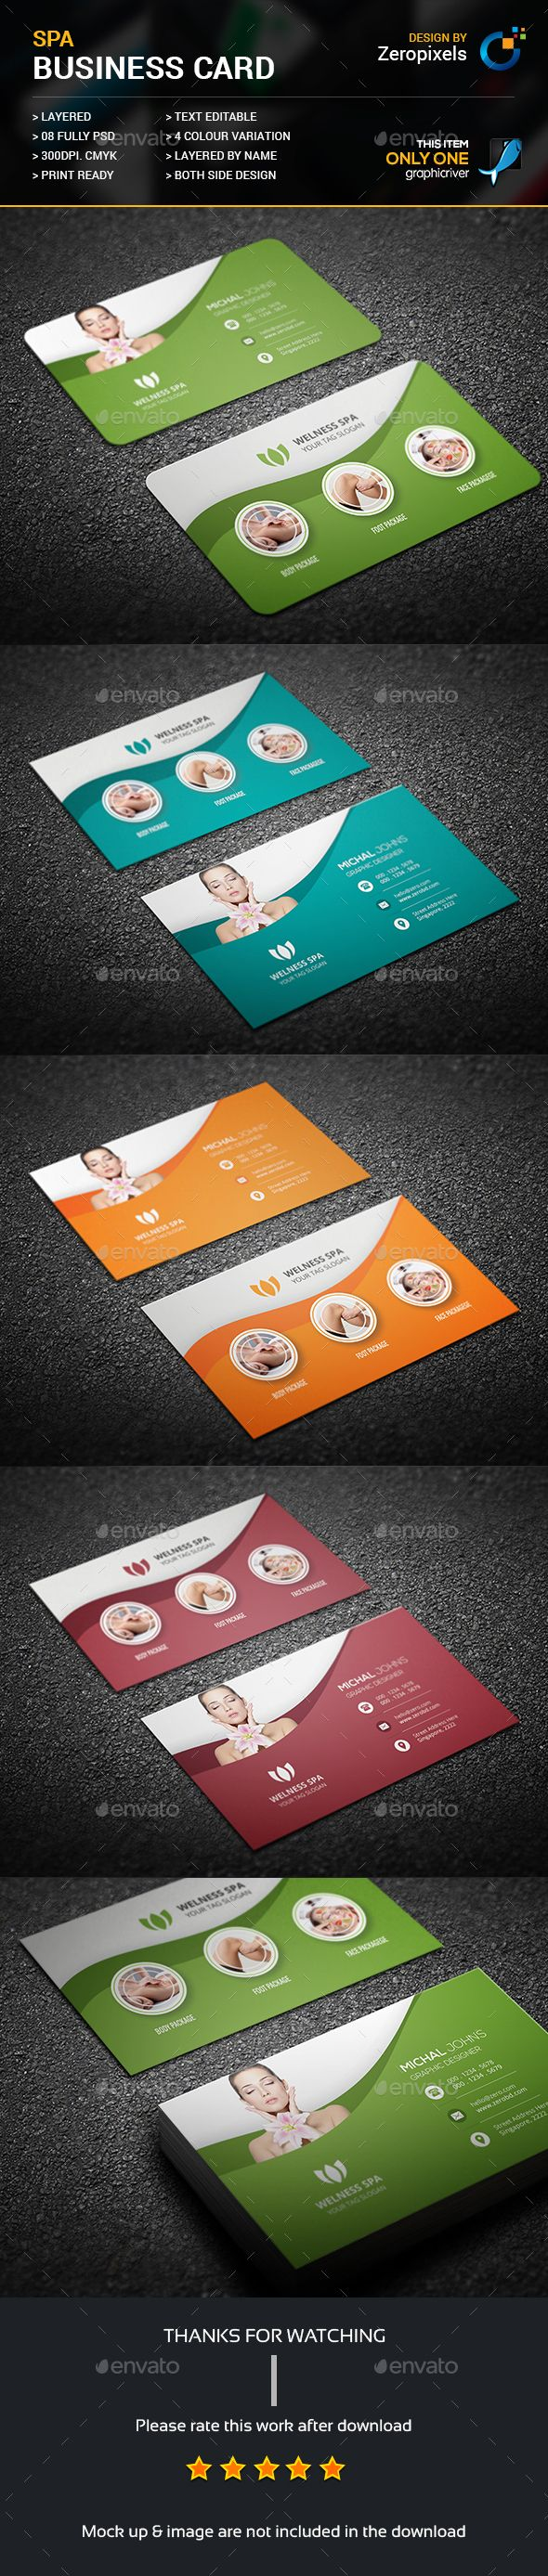 Etiquette tips on business cards business cards card templates beauty spa business card template psd download here httpsgraphicriveritembeauty spa business card17469299refksioks colourmoves